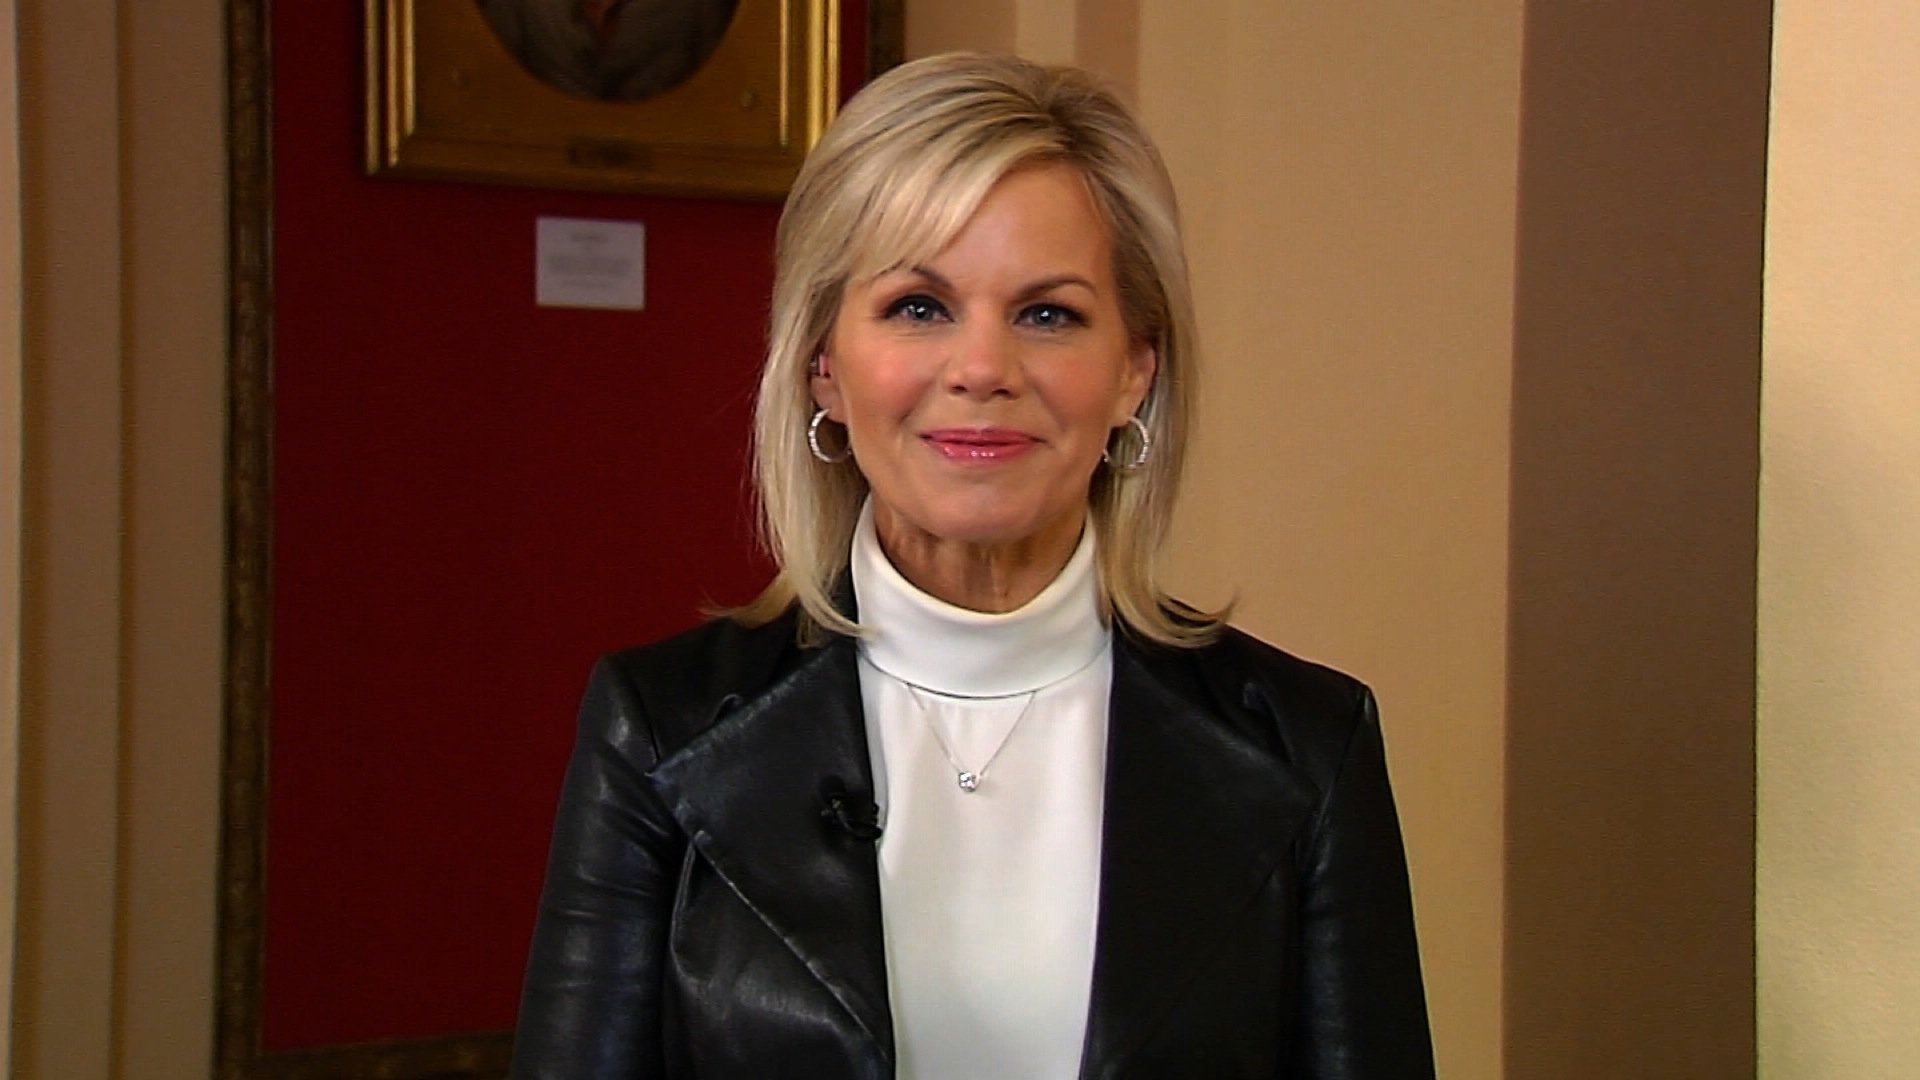 "Former Fox News anchor Gretchen Carlson declined Thursday to rule out a run for public office, telling CNN's Poppy Harlow and John Berman that her life ""has worked in mysterious ways."""